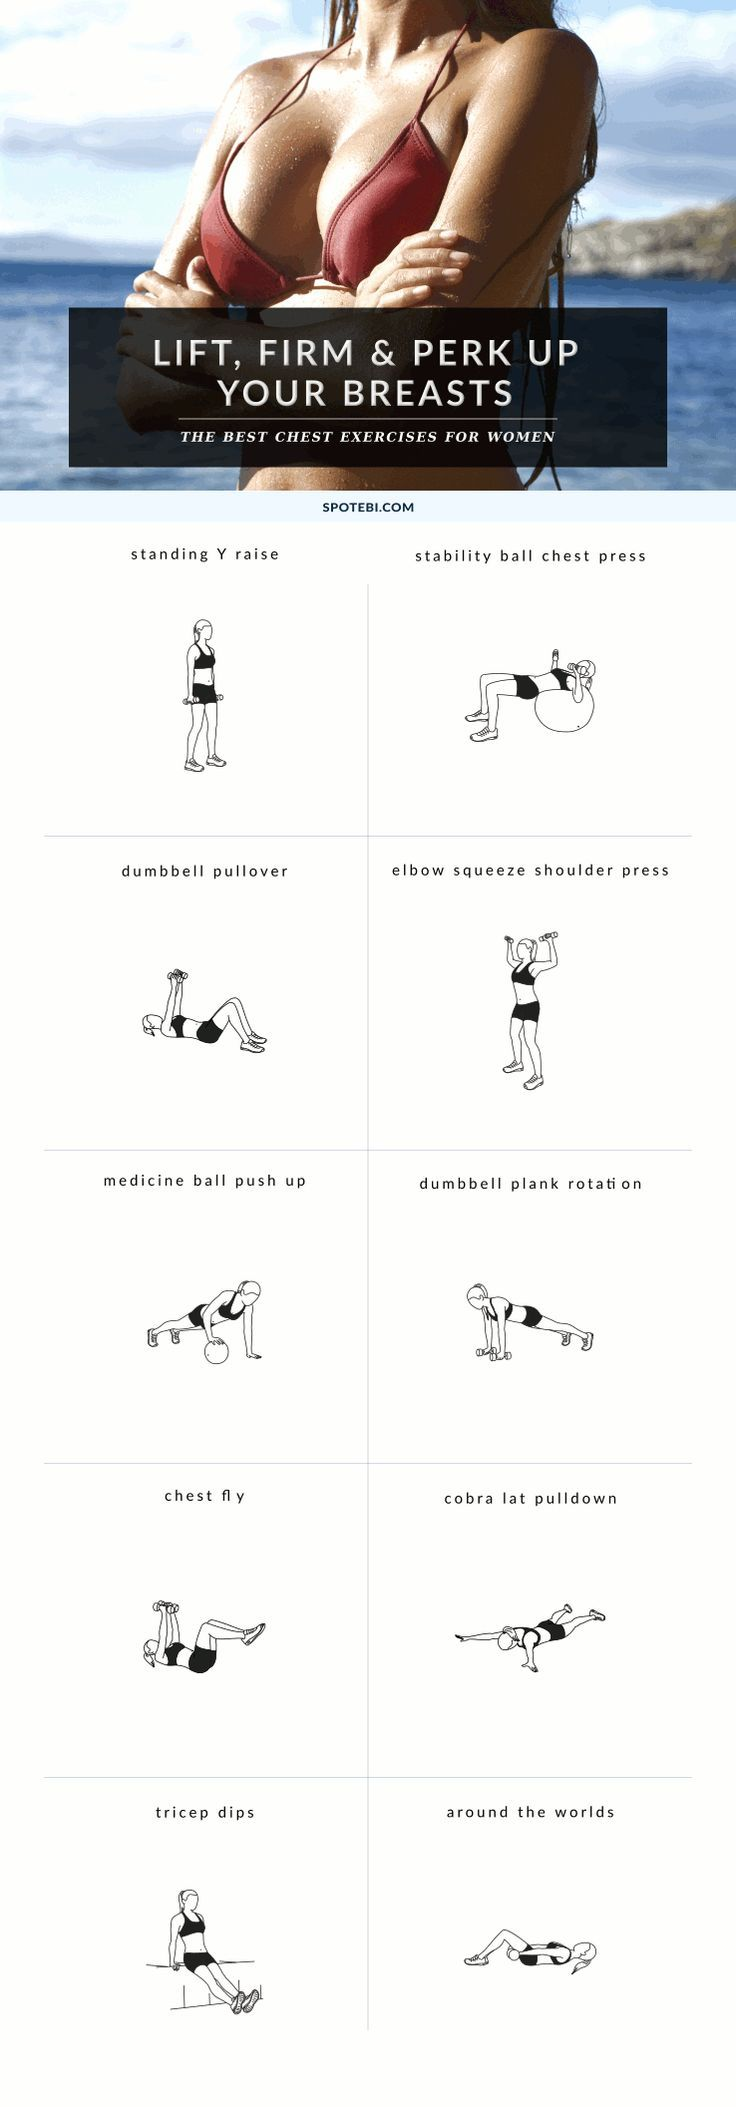 top 10 exercises to lift firm u0026 perk up your exercises